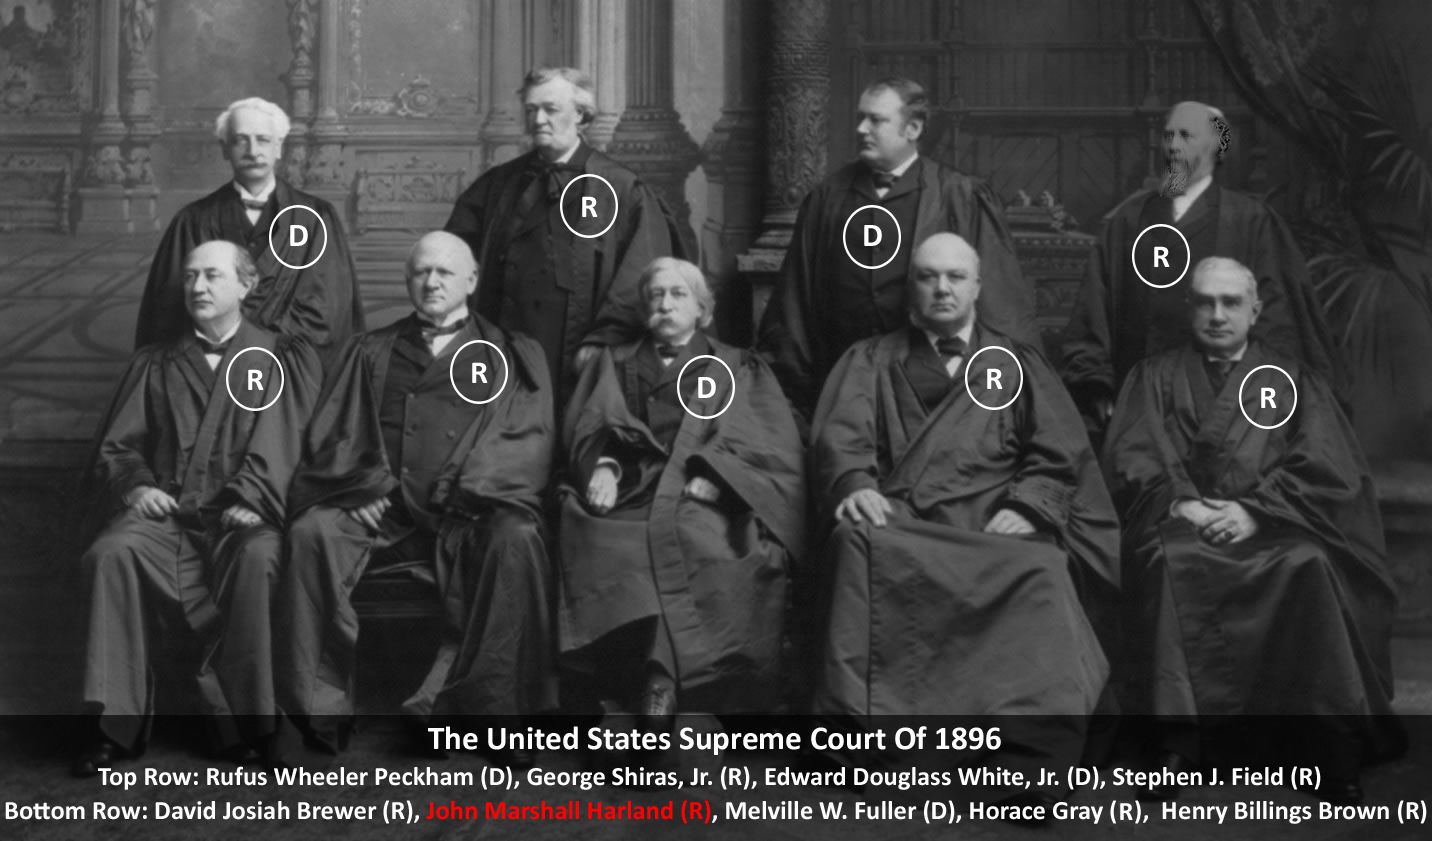 The 1896-1897 U.S. Supreme Court Justices